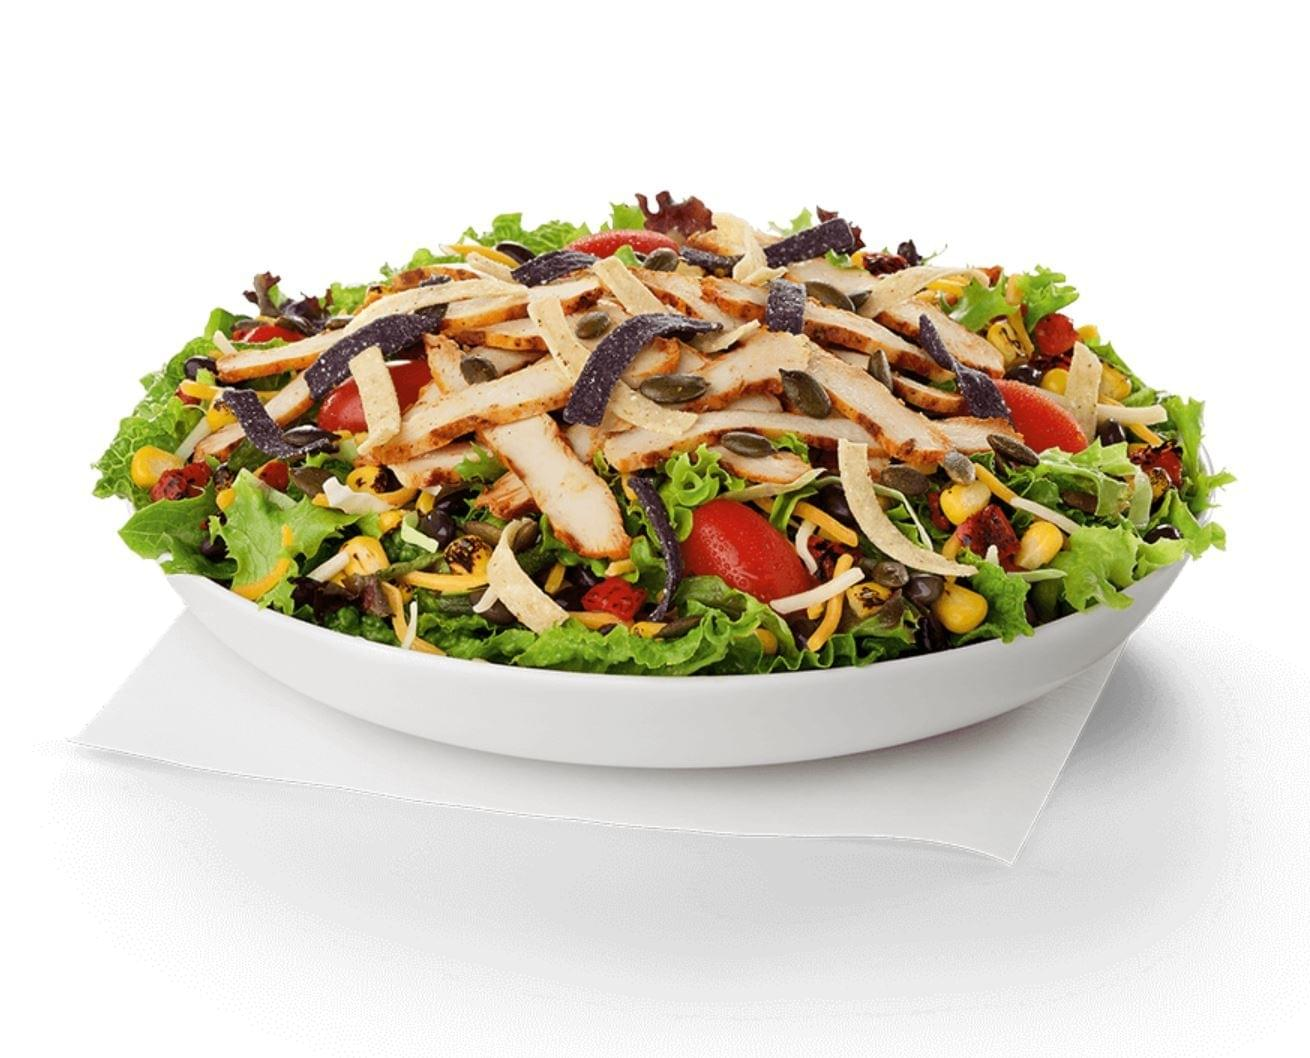 Chick-fil-A Spicy Southwest Salad with Spicy Grilled Chicken Nutrition Facts